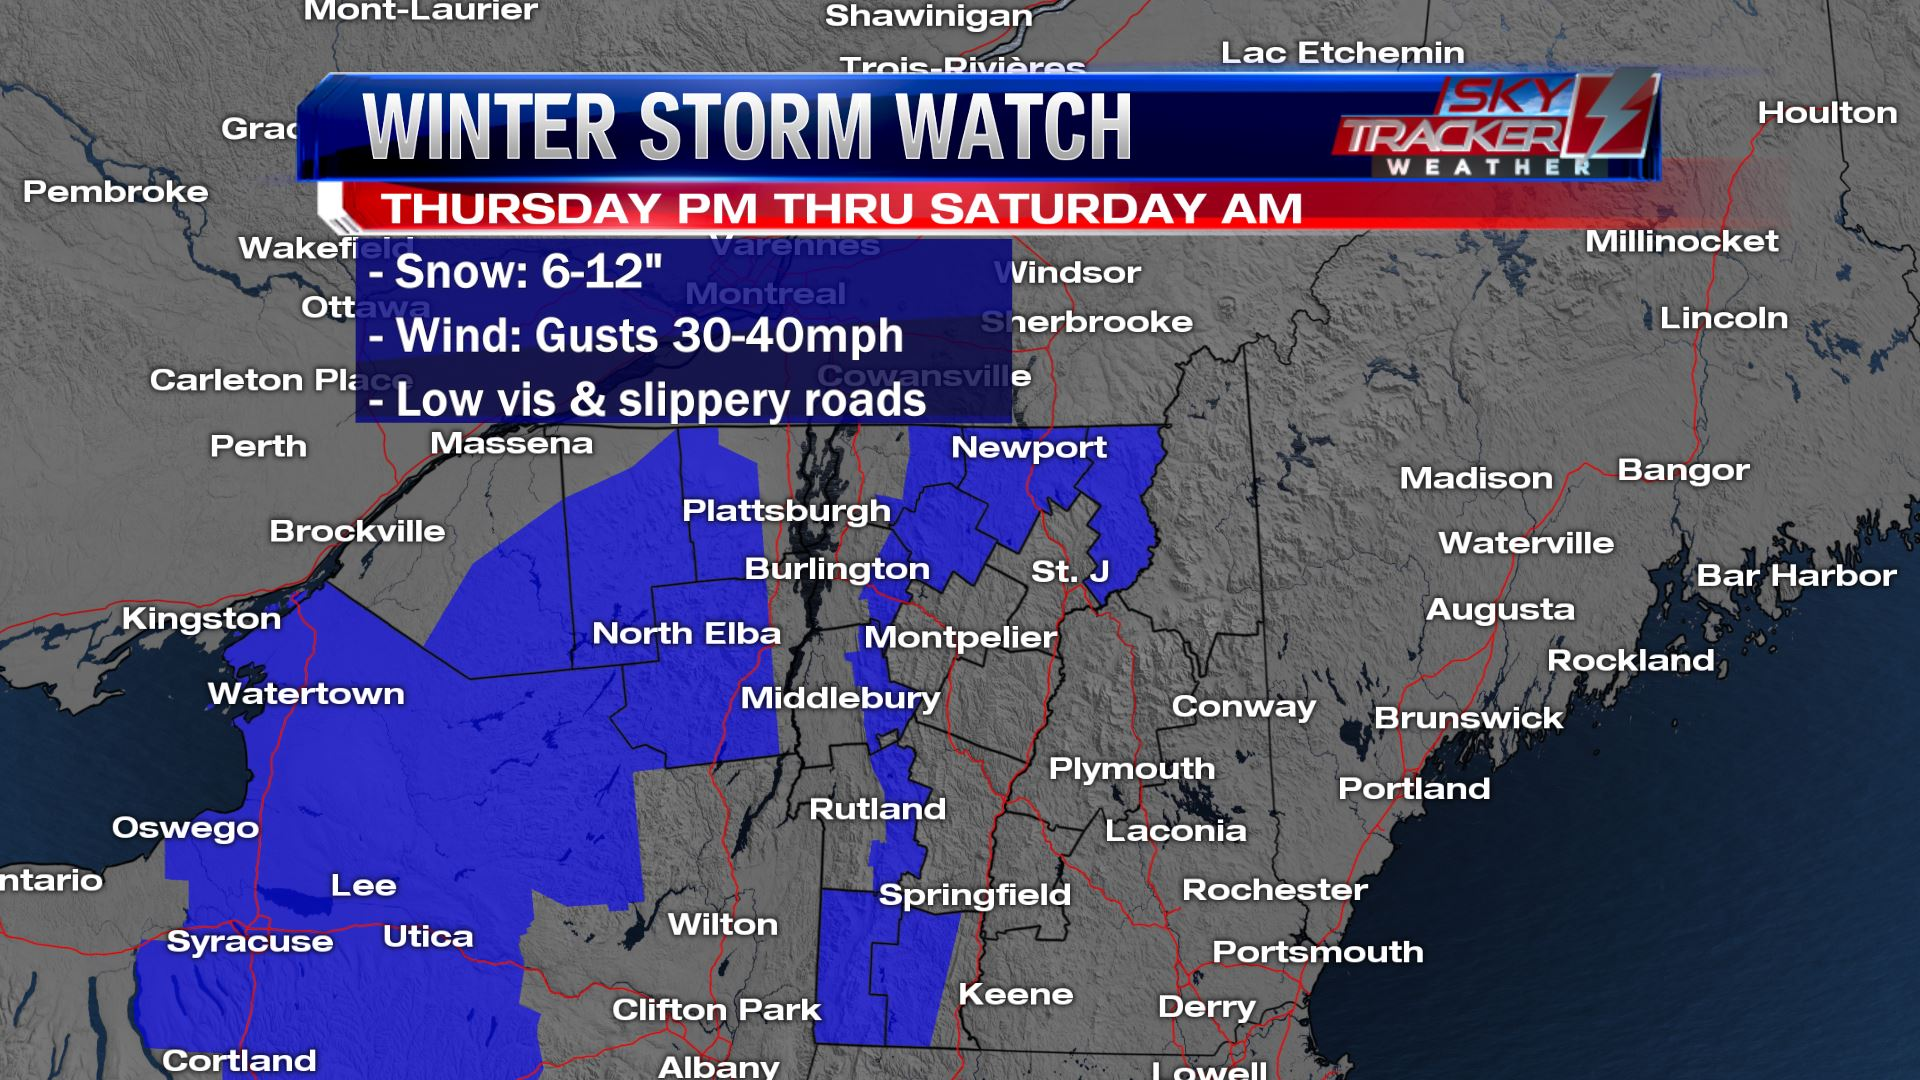 Winter Storm Watch March 21 - 23 2019